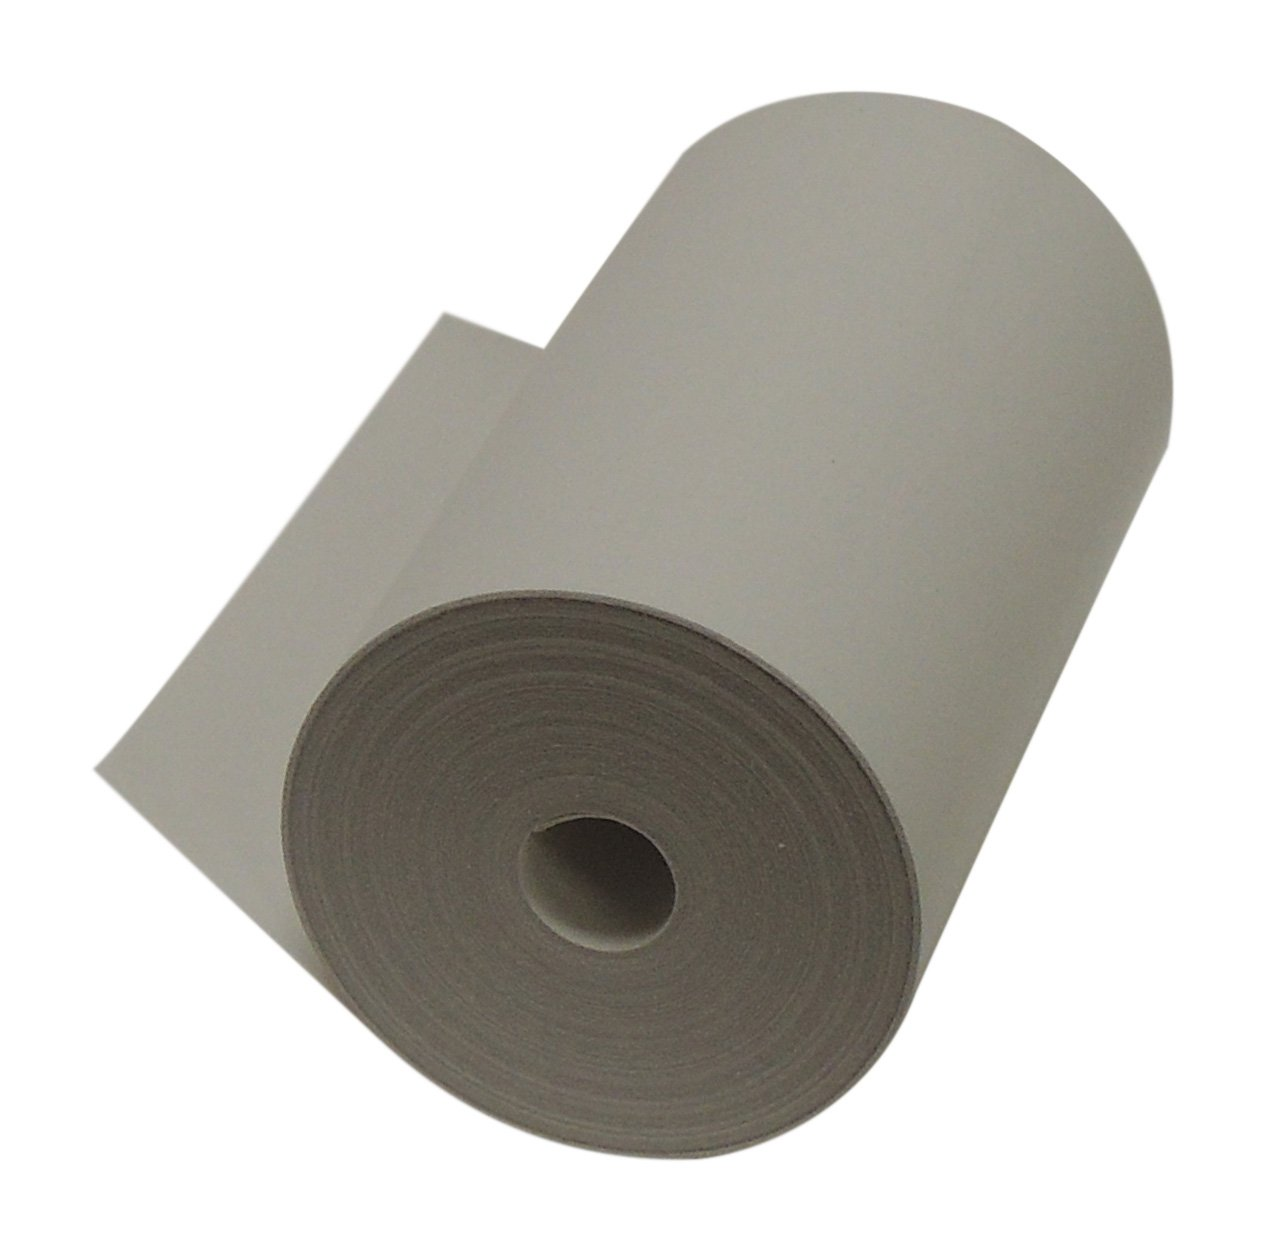 Thermal Paper 2-1/4'' x 50 ft, 1.25'' / 30mm Diameter, CORELESS, BPA Free, 100 Rolls by POS1 (Image #4)